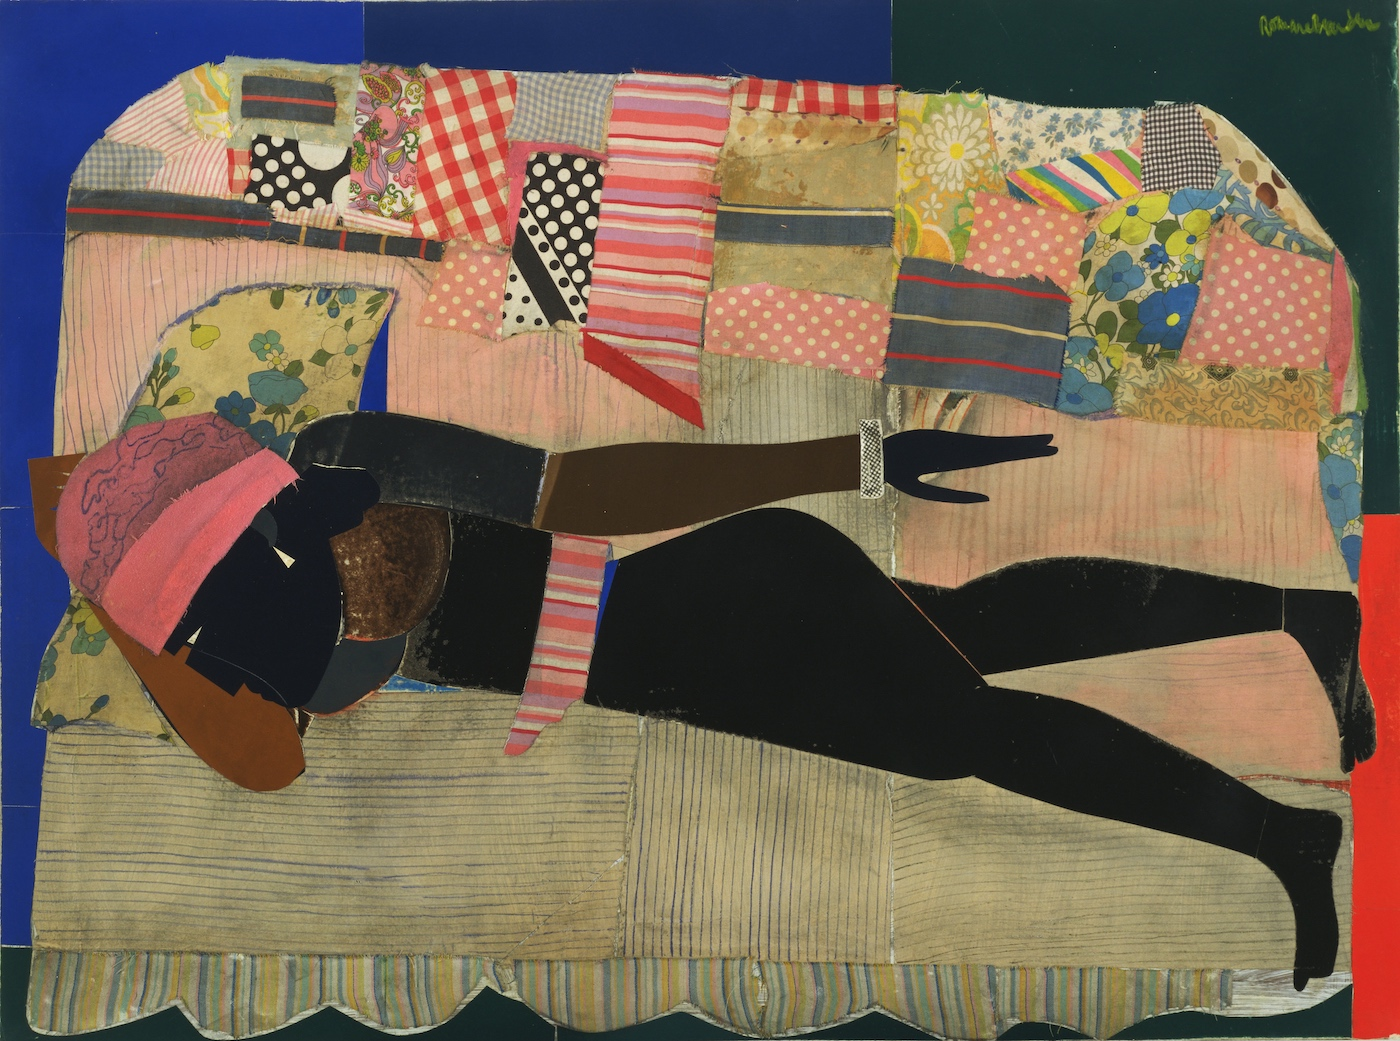 Mickalene Thomas, Romare Bearden, Posing Modernity, The Black Model from Manet and Matisse to Today, Mickalene Thomas, African American Art, Black Art, Racism, KOLUMN Magazine, KOLUMN, Willoughby Avenue